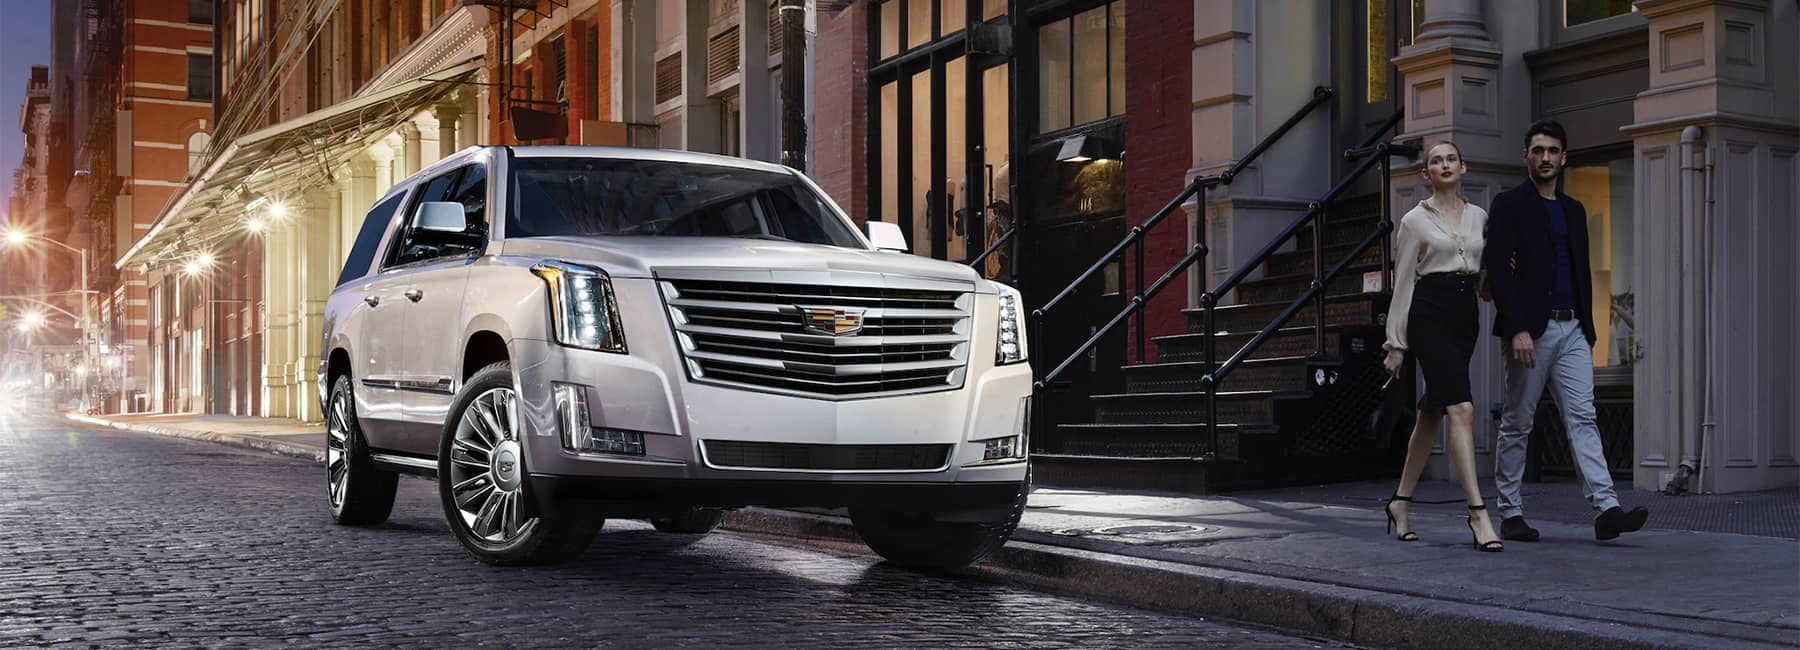 2020-Cadillac-Escalade-Full-Size-SUV-Front-Exterior-Parked